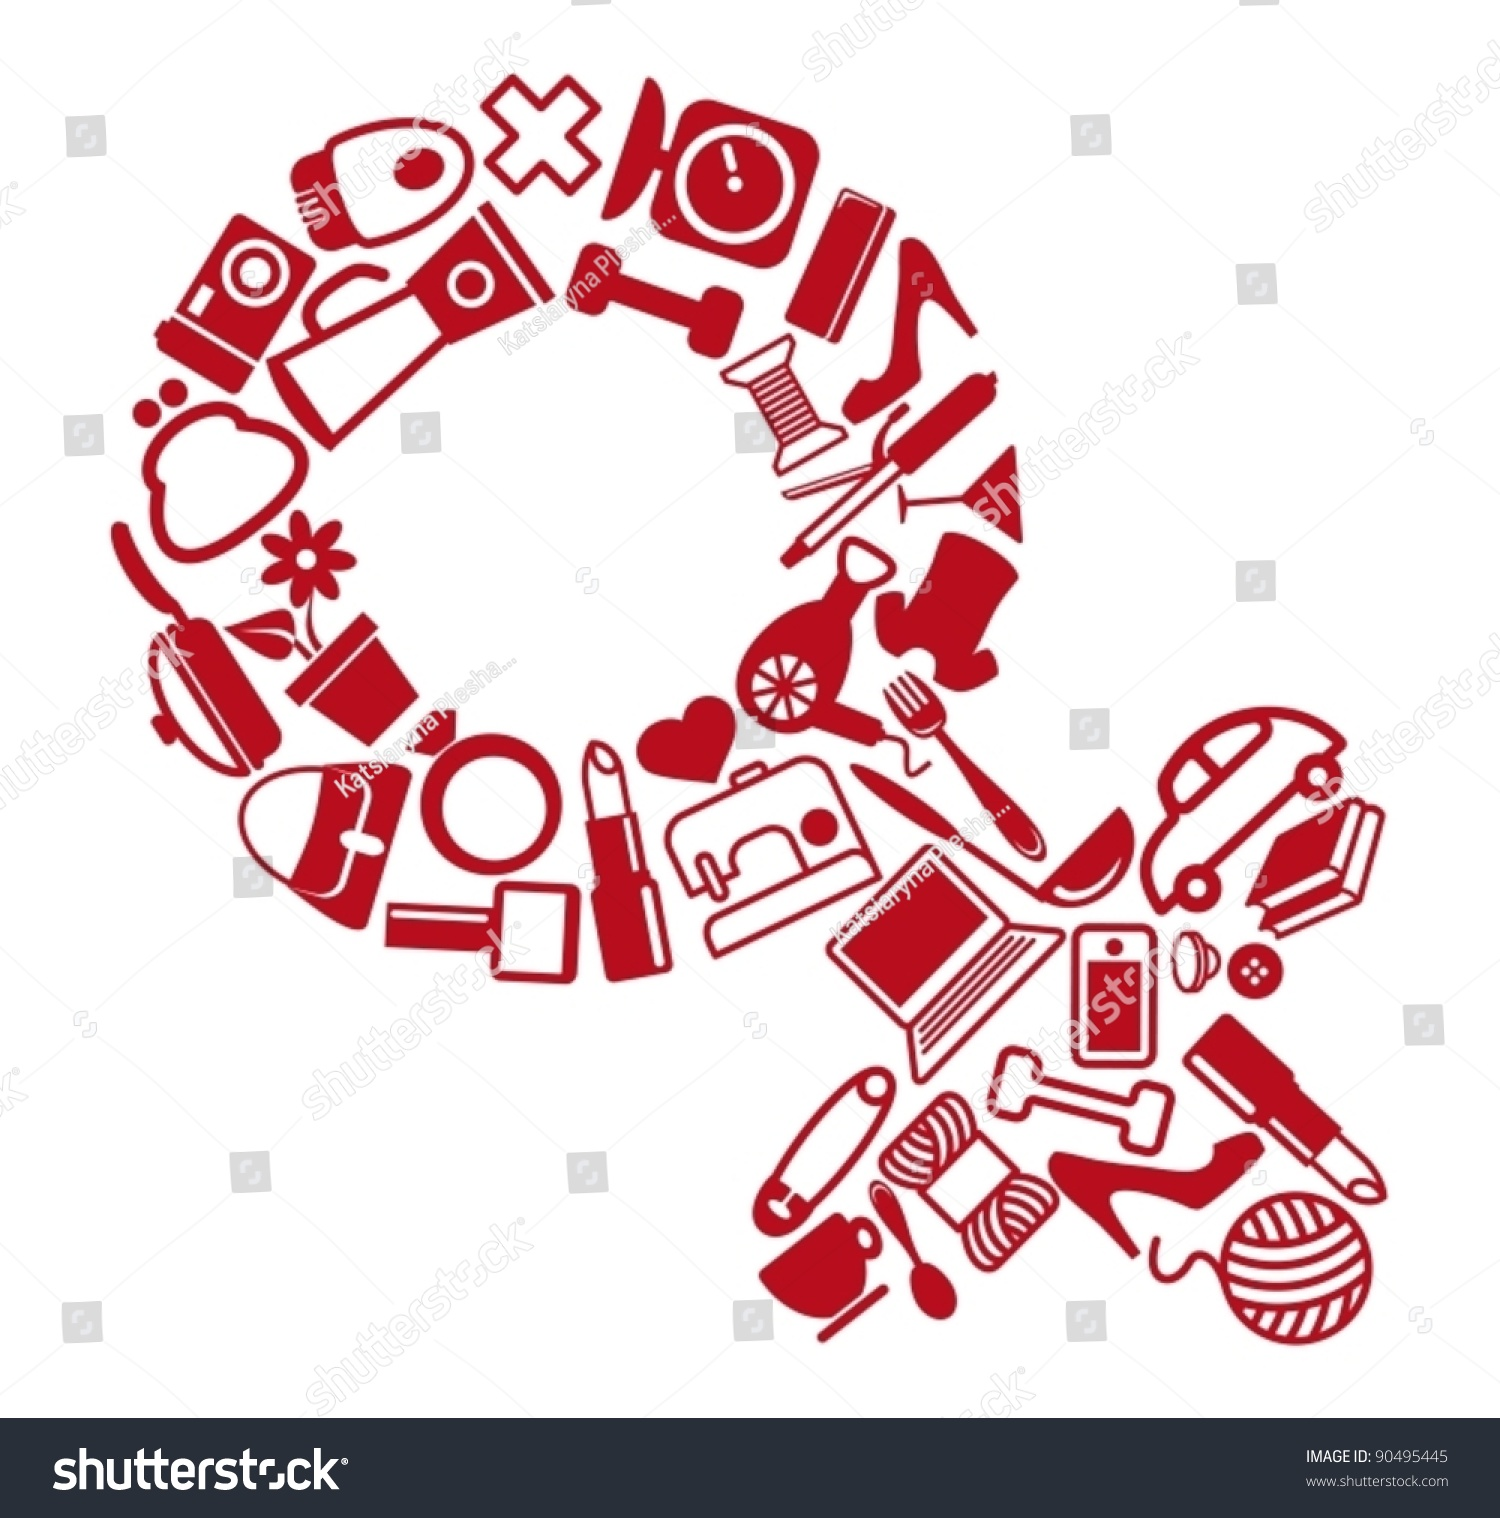 Female Gender Symbol Stock Vector 90495445 Shutterstock